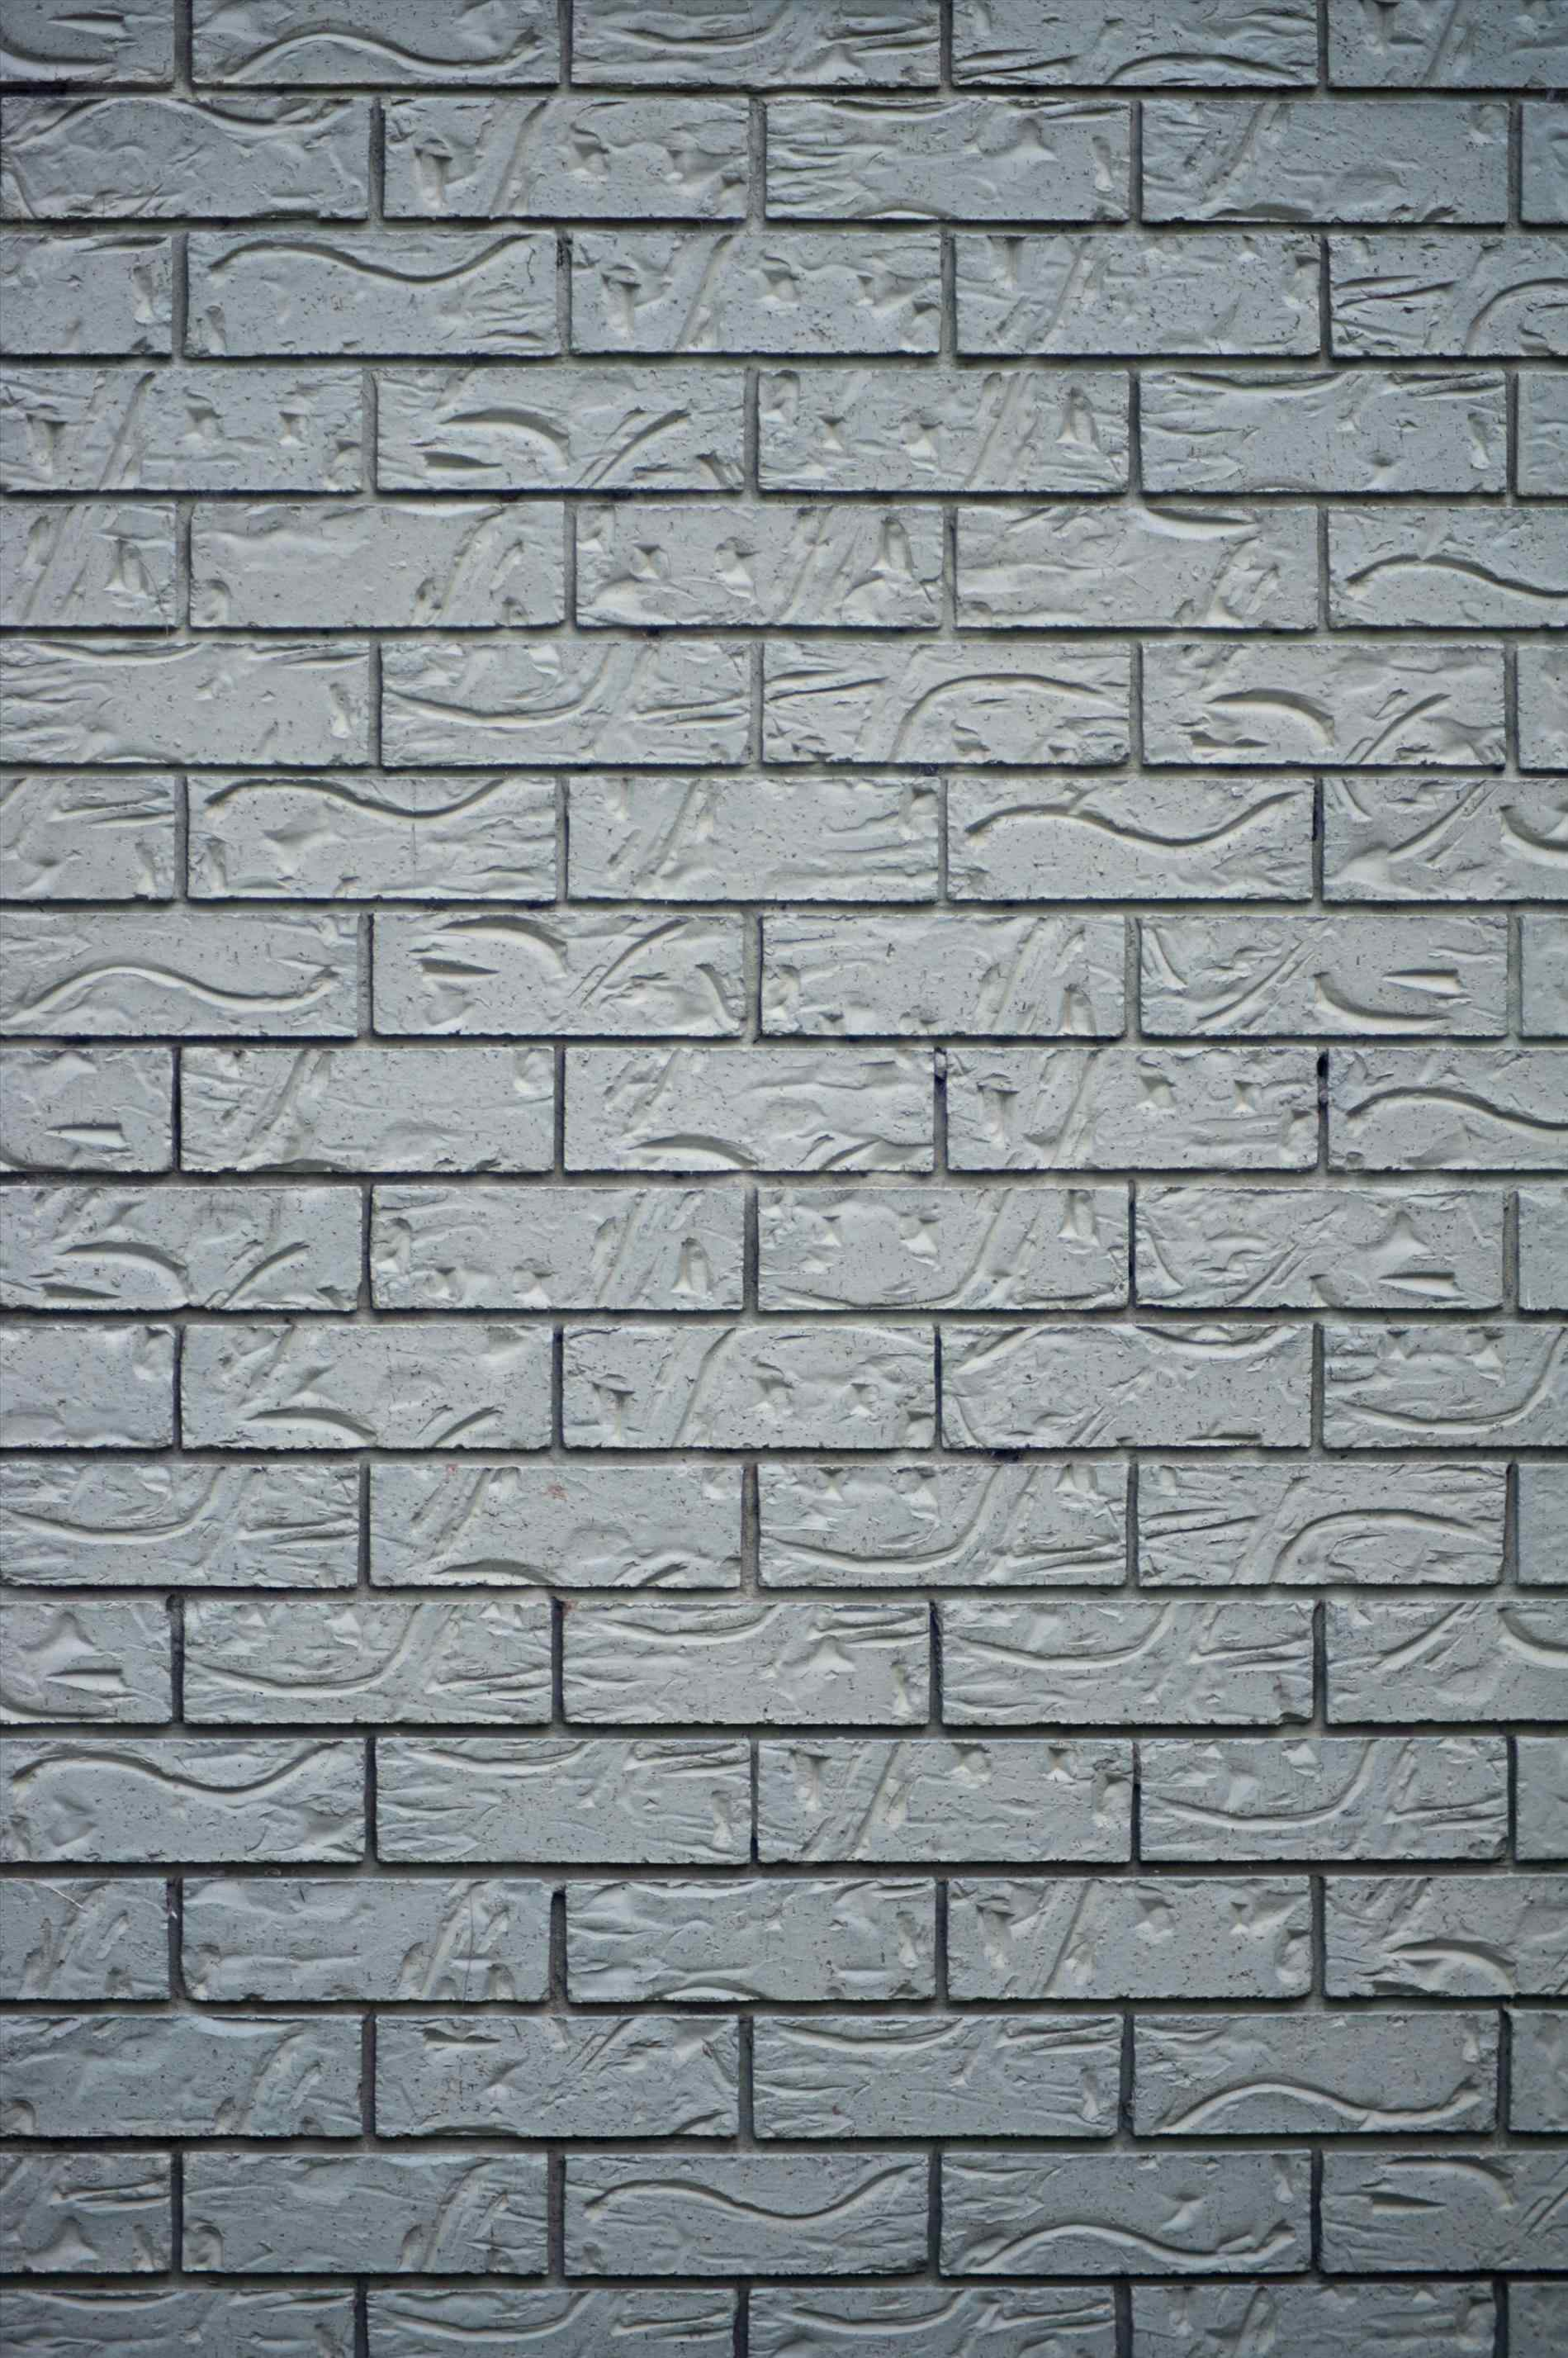 Brick Wall Pencil And In Color Background Great Icon - Vertical Brick Wall Background - HD Wallpaper